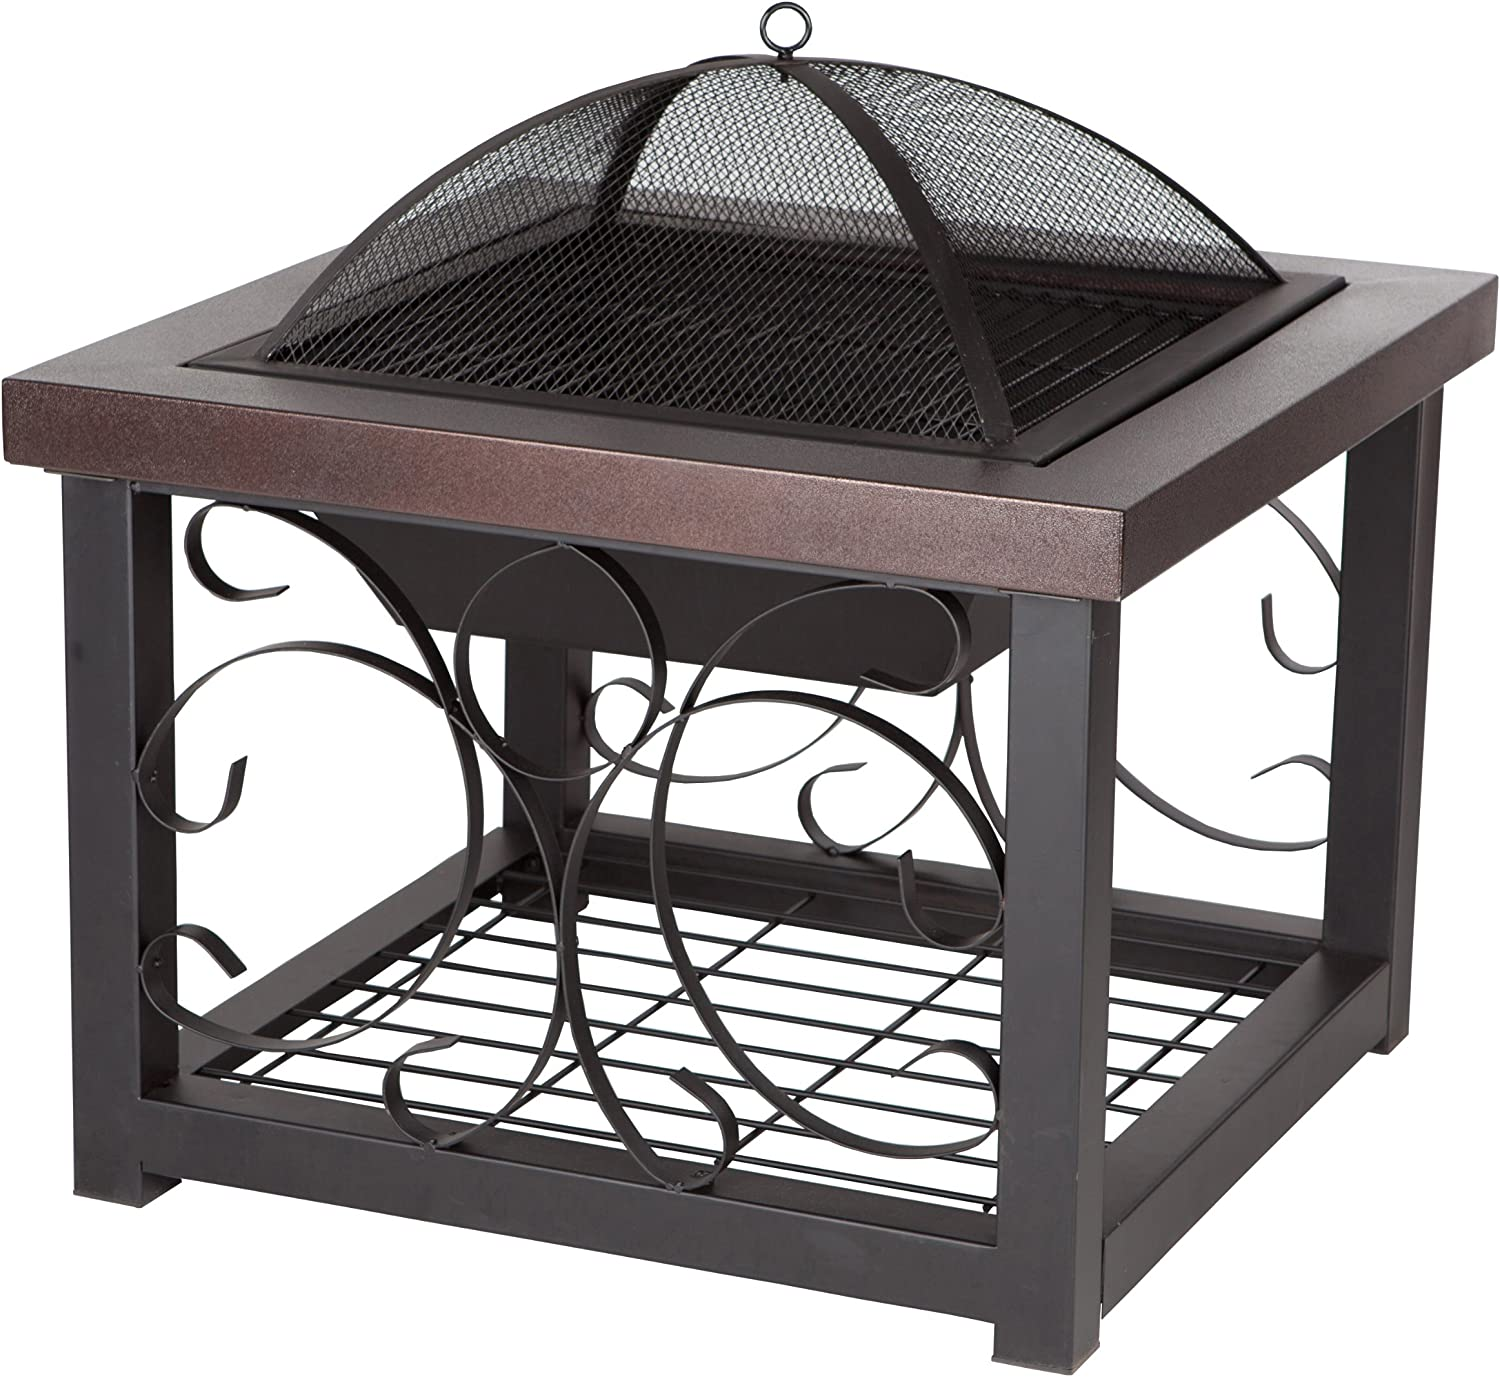 Fire Sense Hammer Tone Bronze Finish Cocktail Table Fire Pit   Wood Burning   Steel Mesh Spark Screen, Wood Grate, and Screen Lift Tool Included   Square Steel Fire Pit with Log Storage Rack  